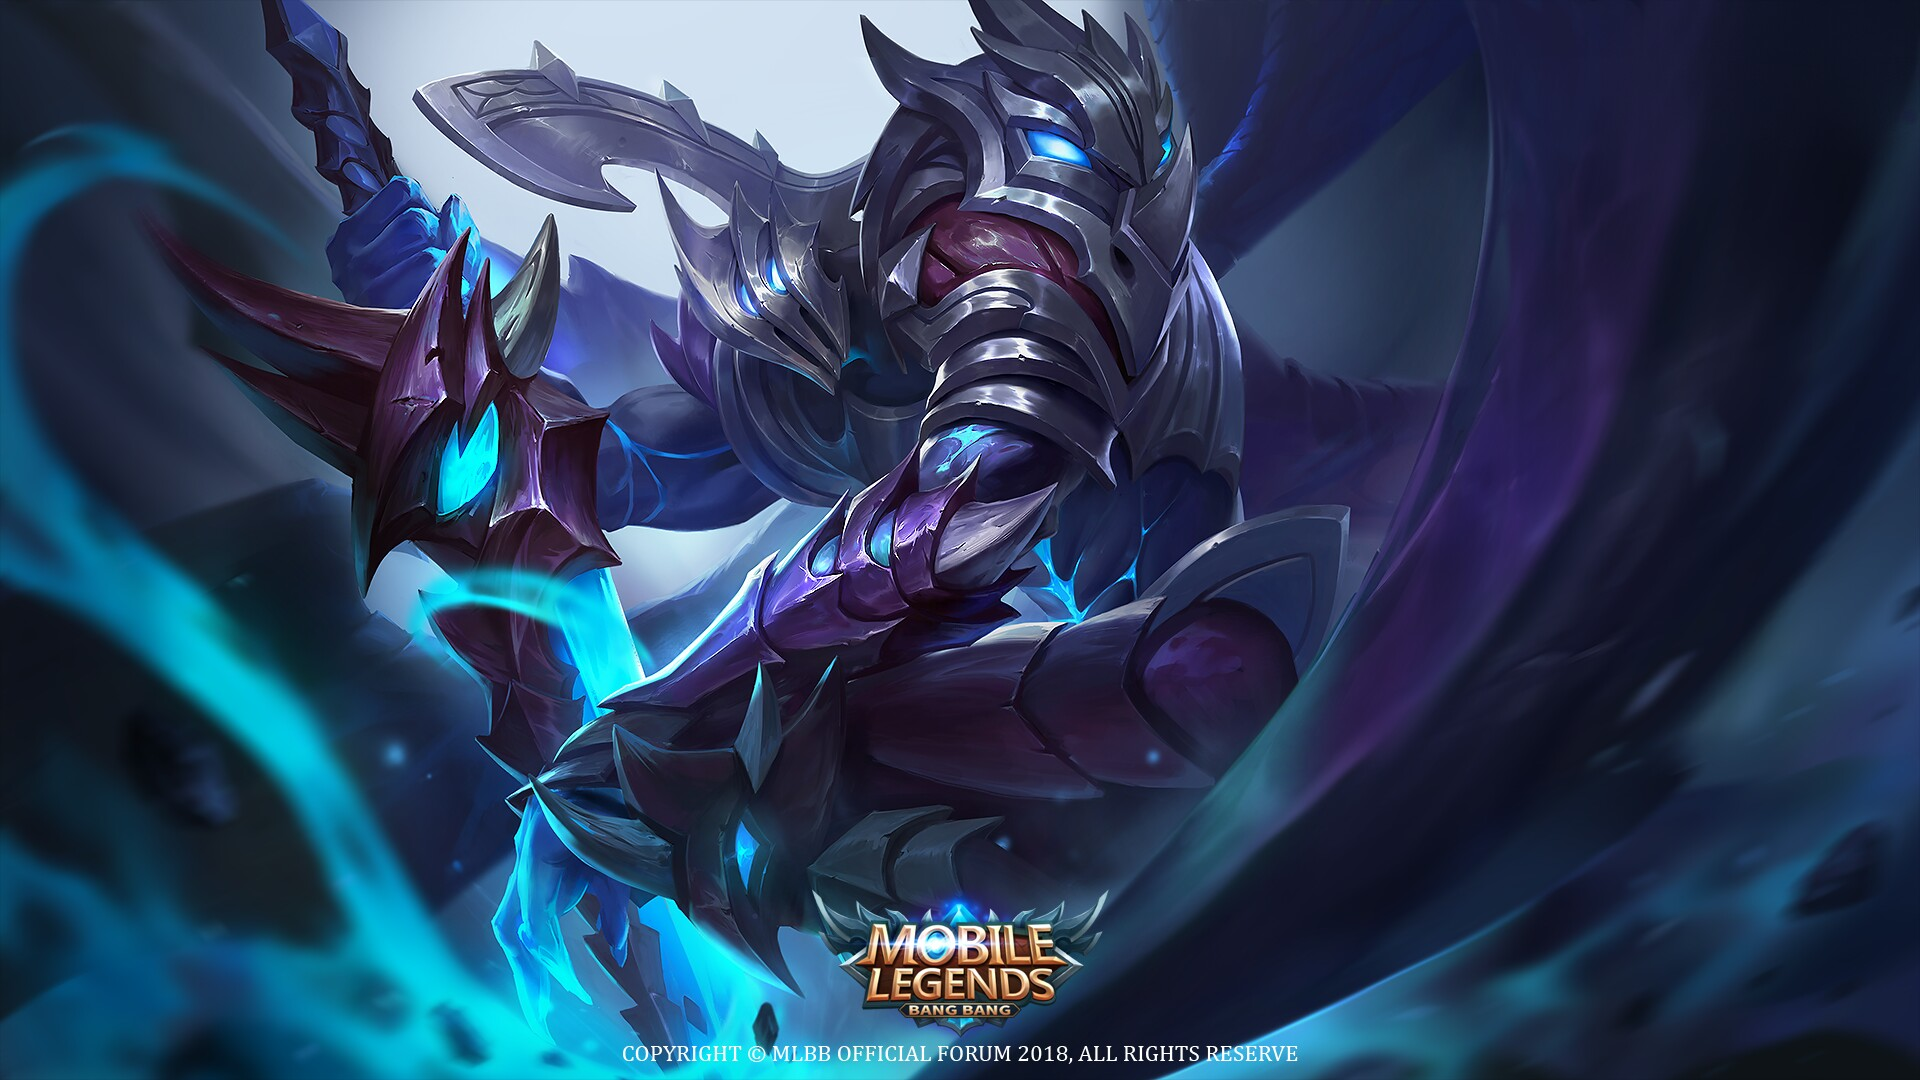 Free 120 Best Mobile Legends Wallpapers Ever